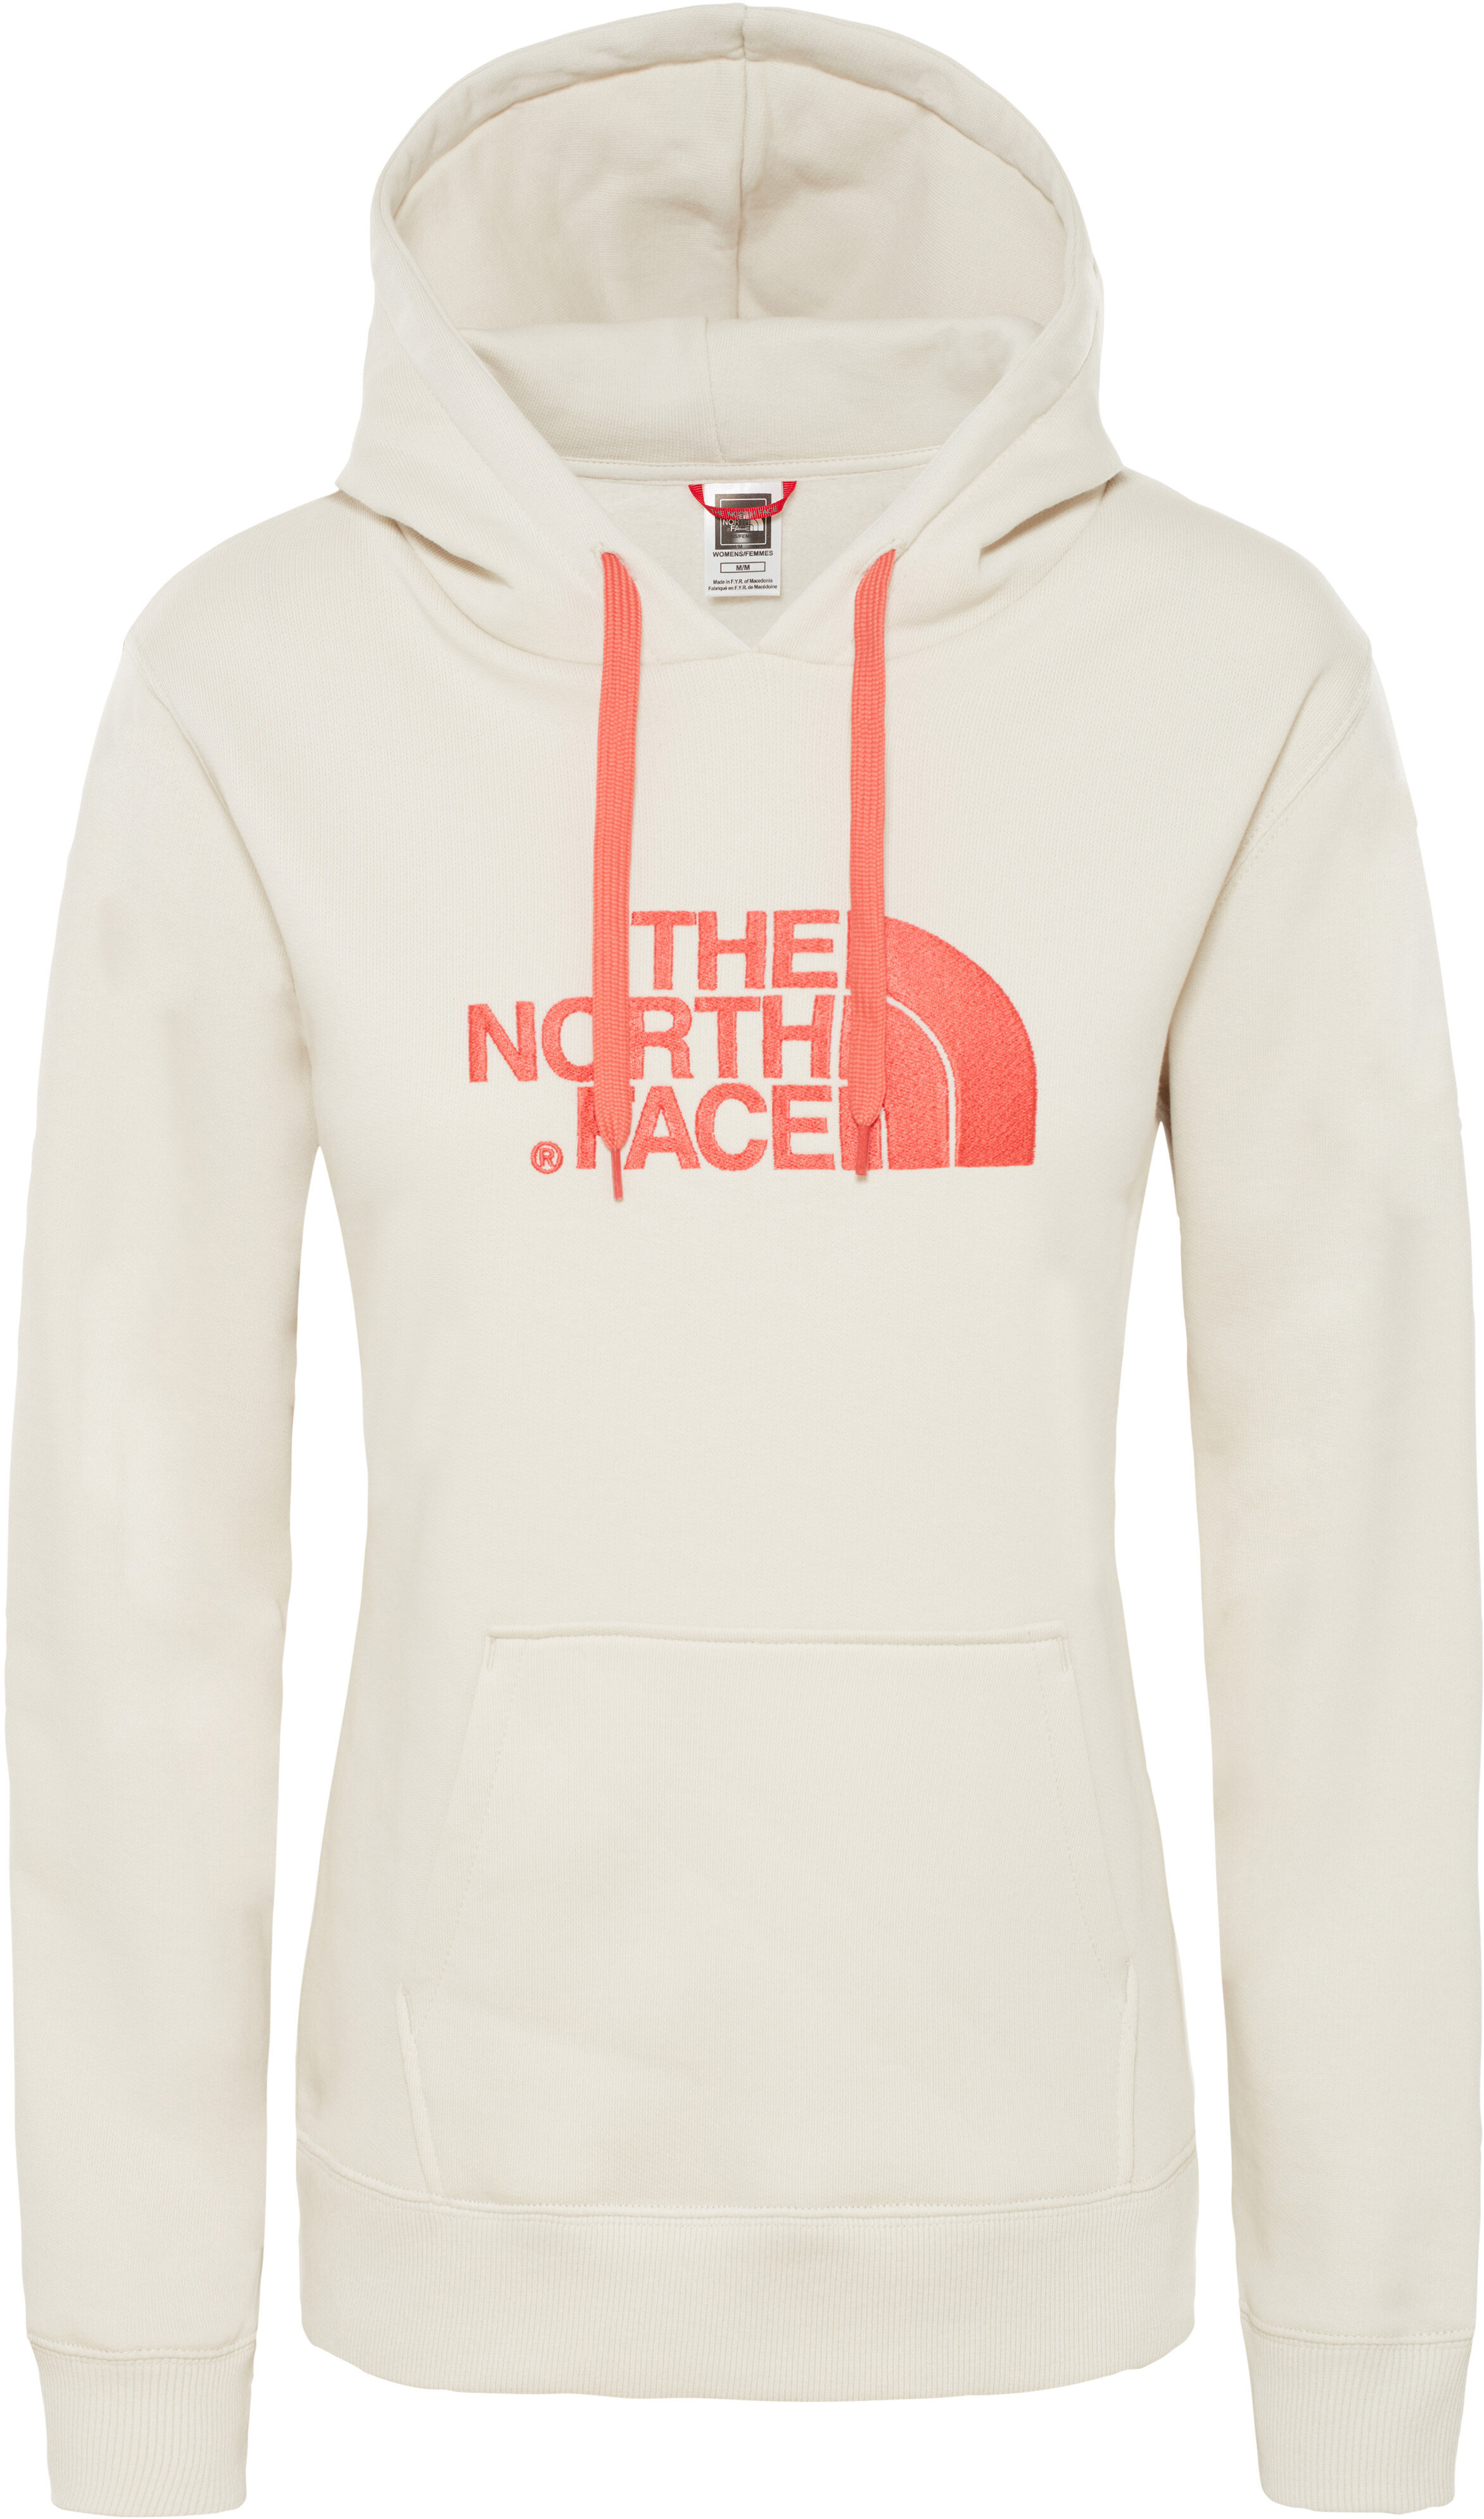 bd9676617 The North Face Drew Peak Pullover Hoodie Women vintage white/spicd coral